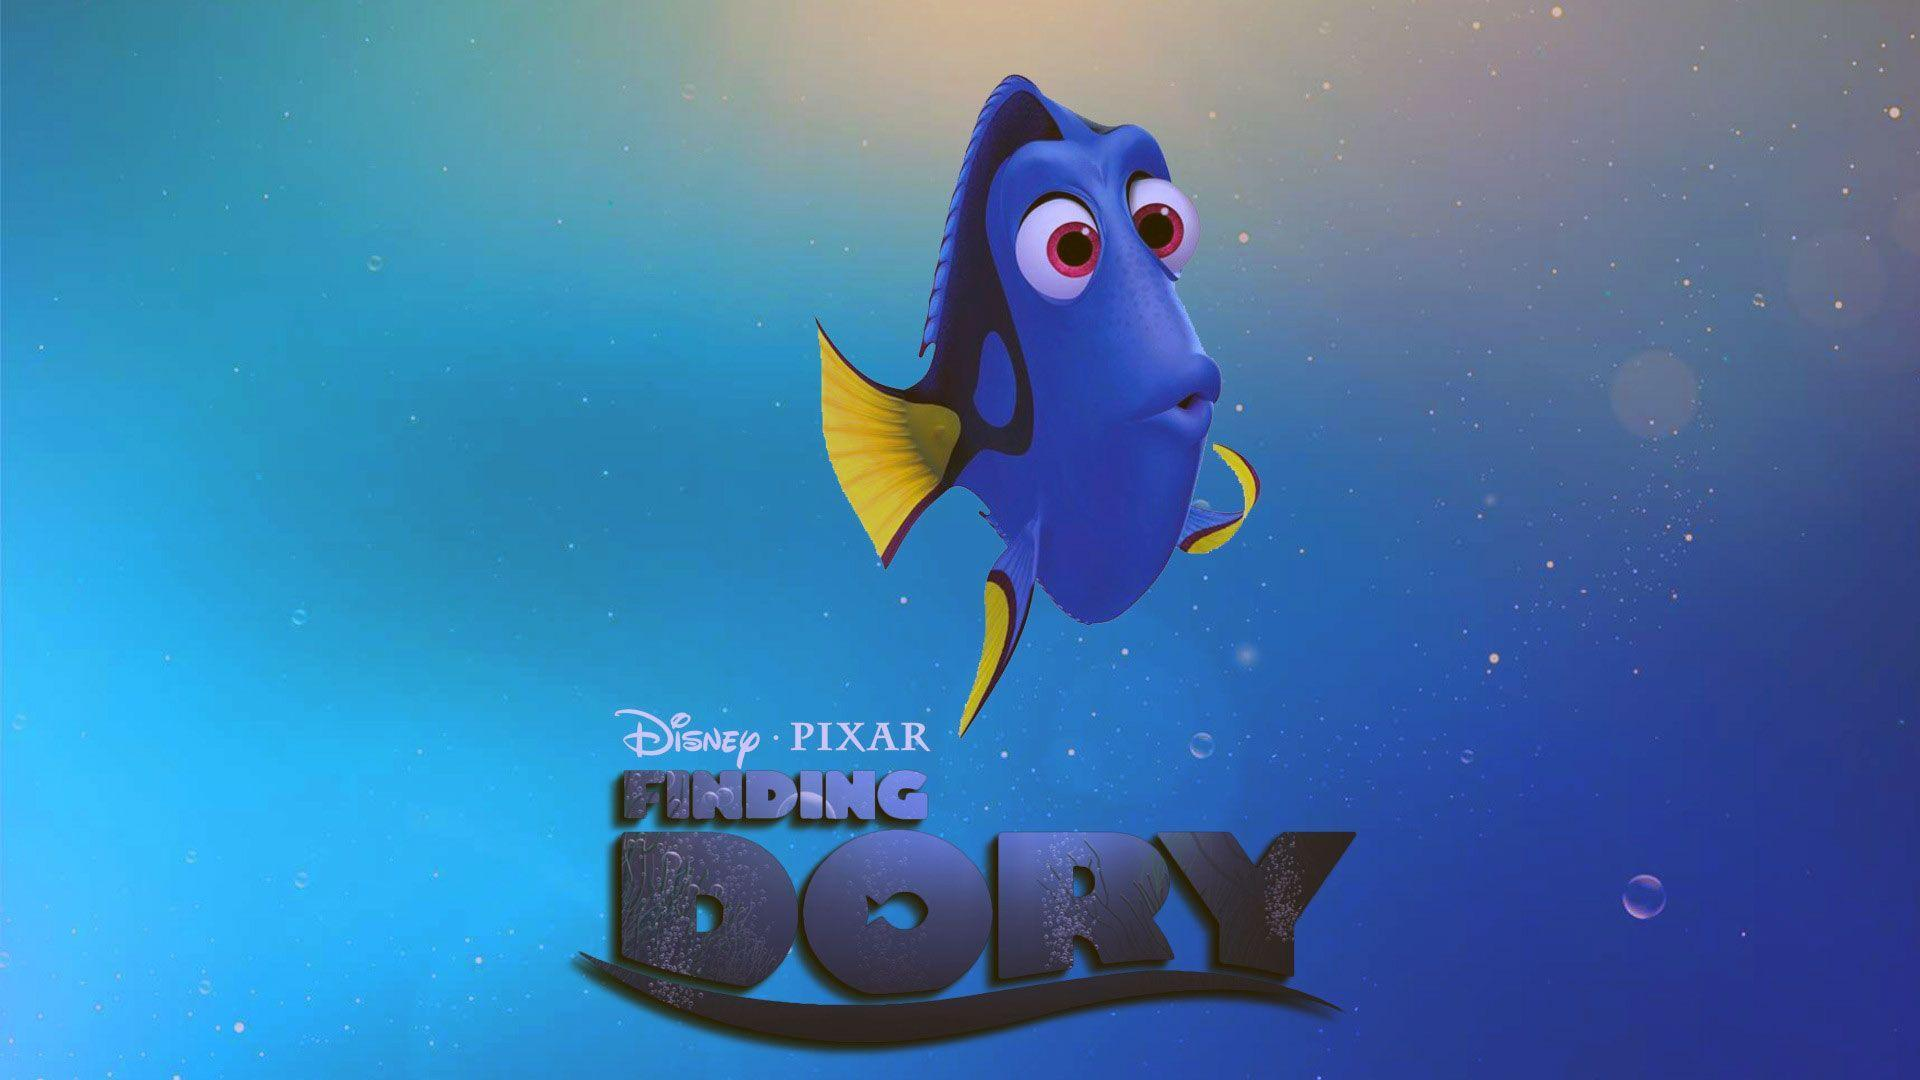 Finding Dory Movie Wallpapers Themes